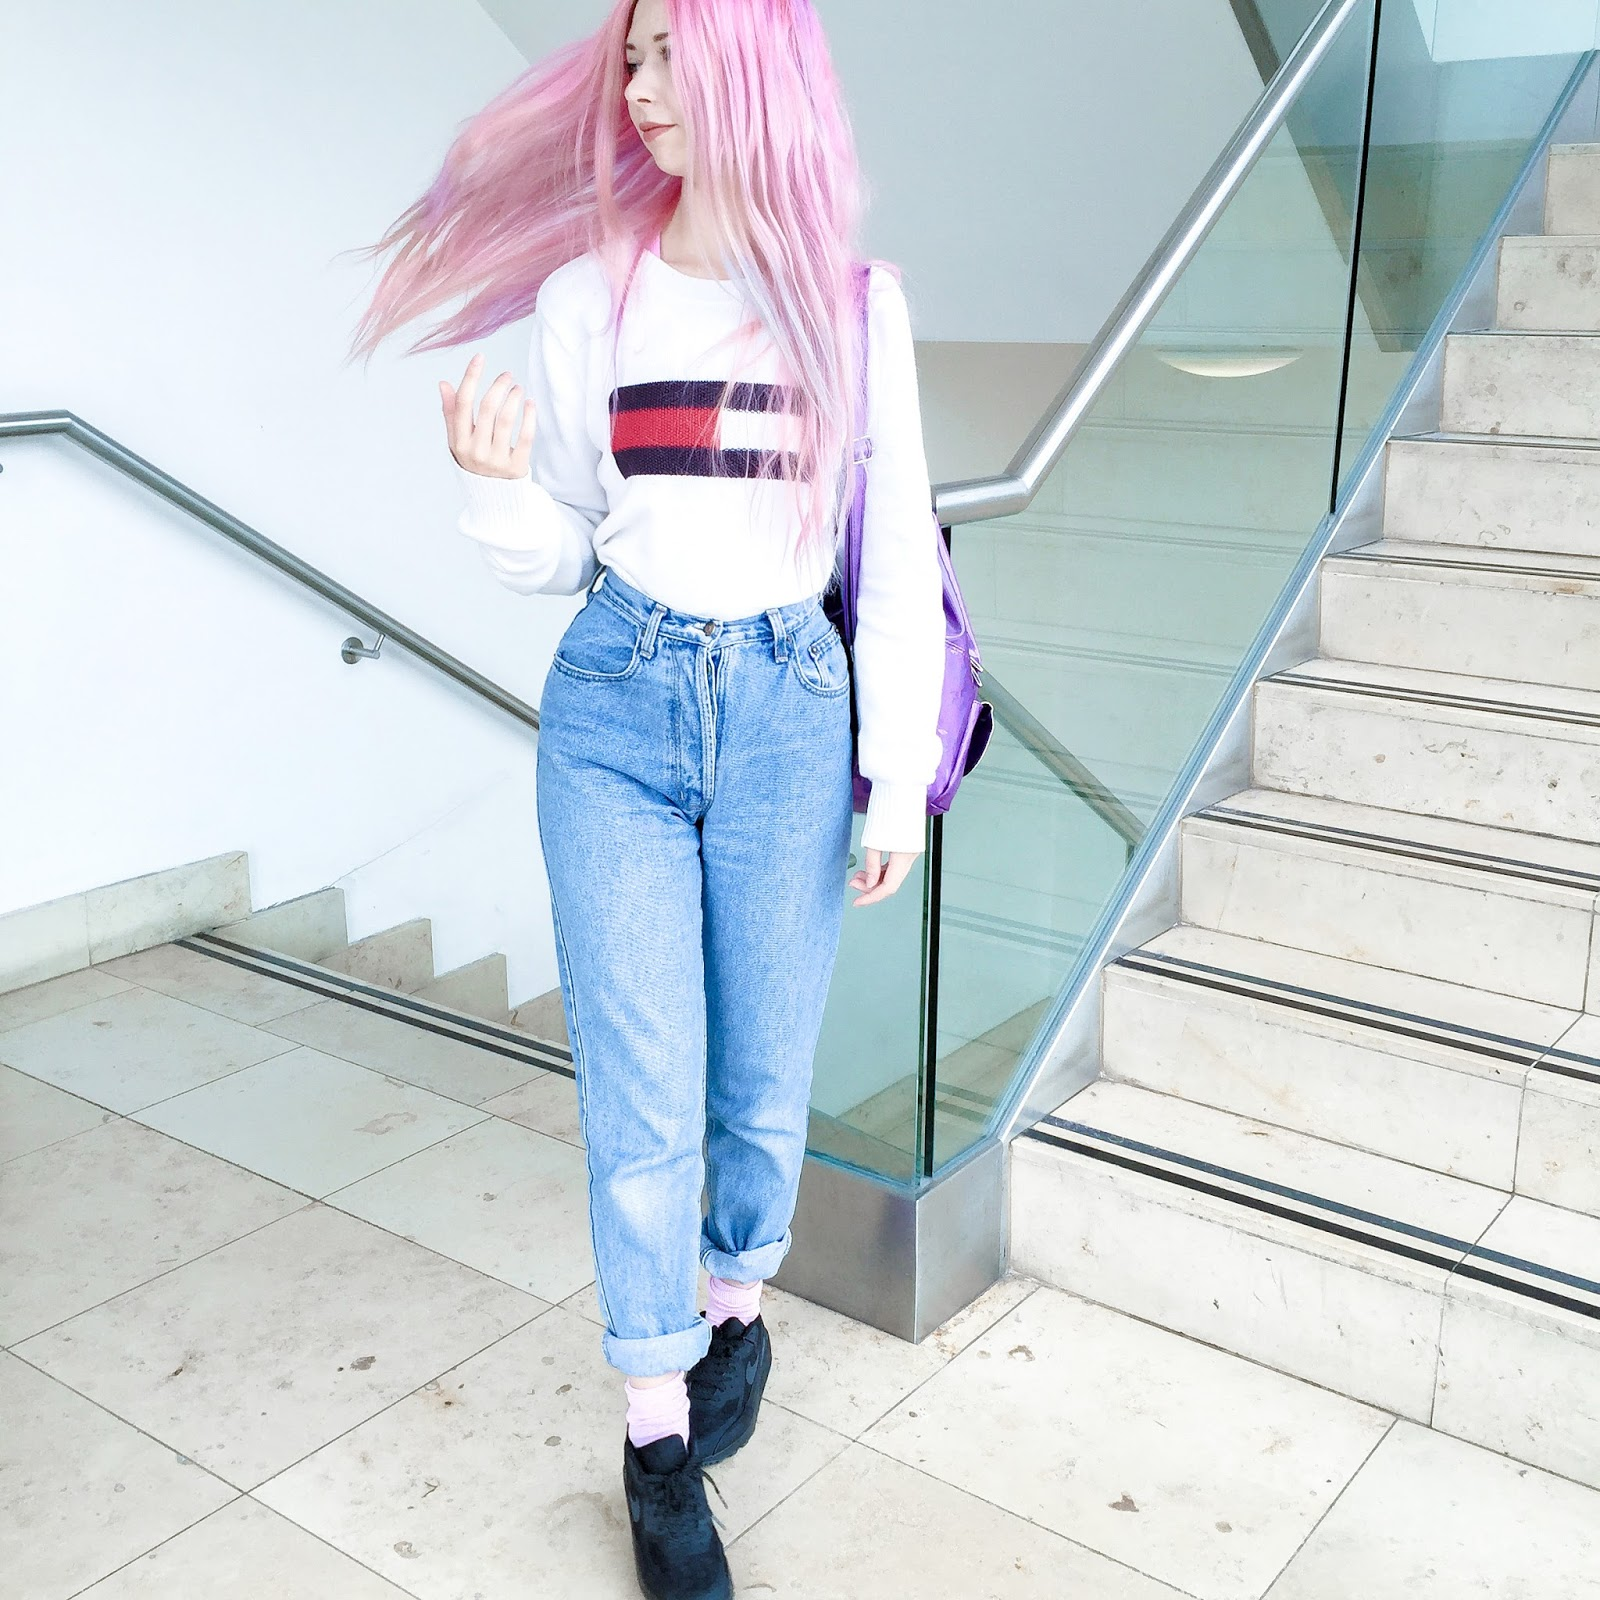 03eaa1806331a SHOPPING OUTFIT. VINTAGE TOMMY HILFIGER JUMPER  CHARITY SHOP MOM JEANS  TOPSHOP  BLACK AIRMAX  OFFICE SOCKS   WE LOVE COLORS